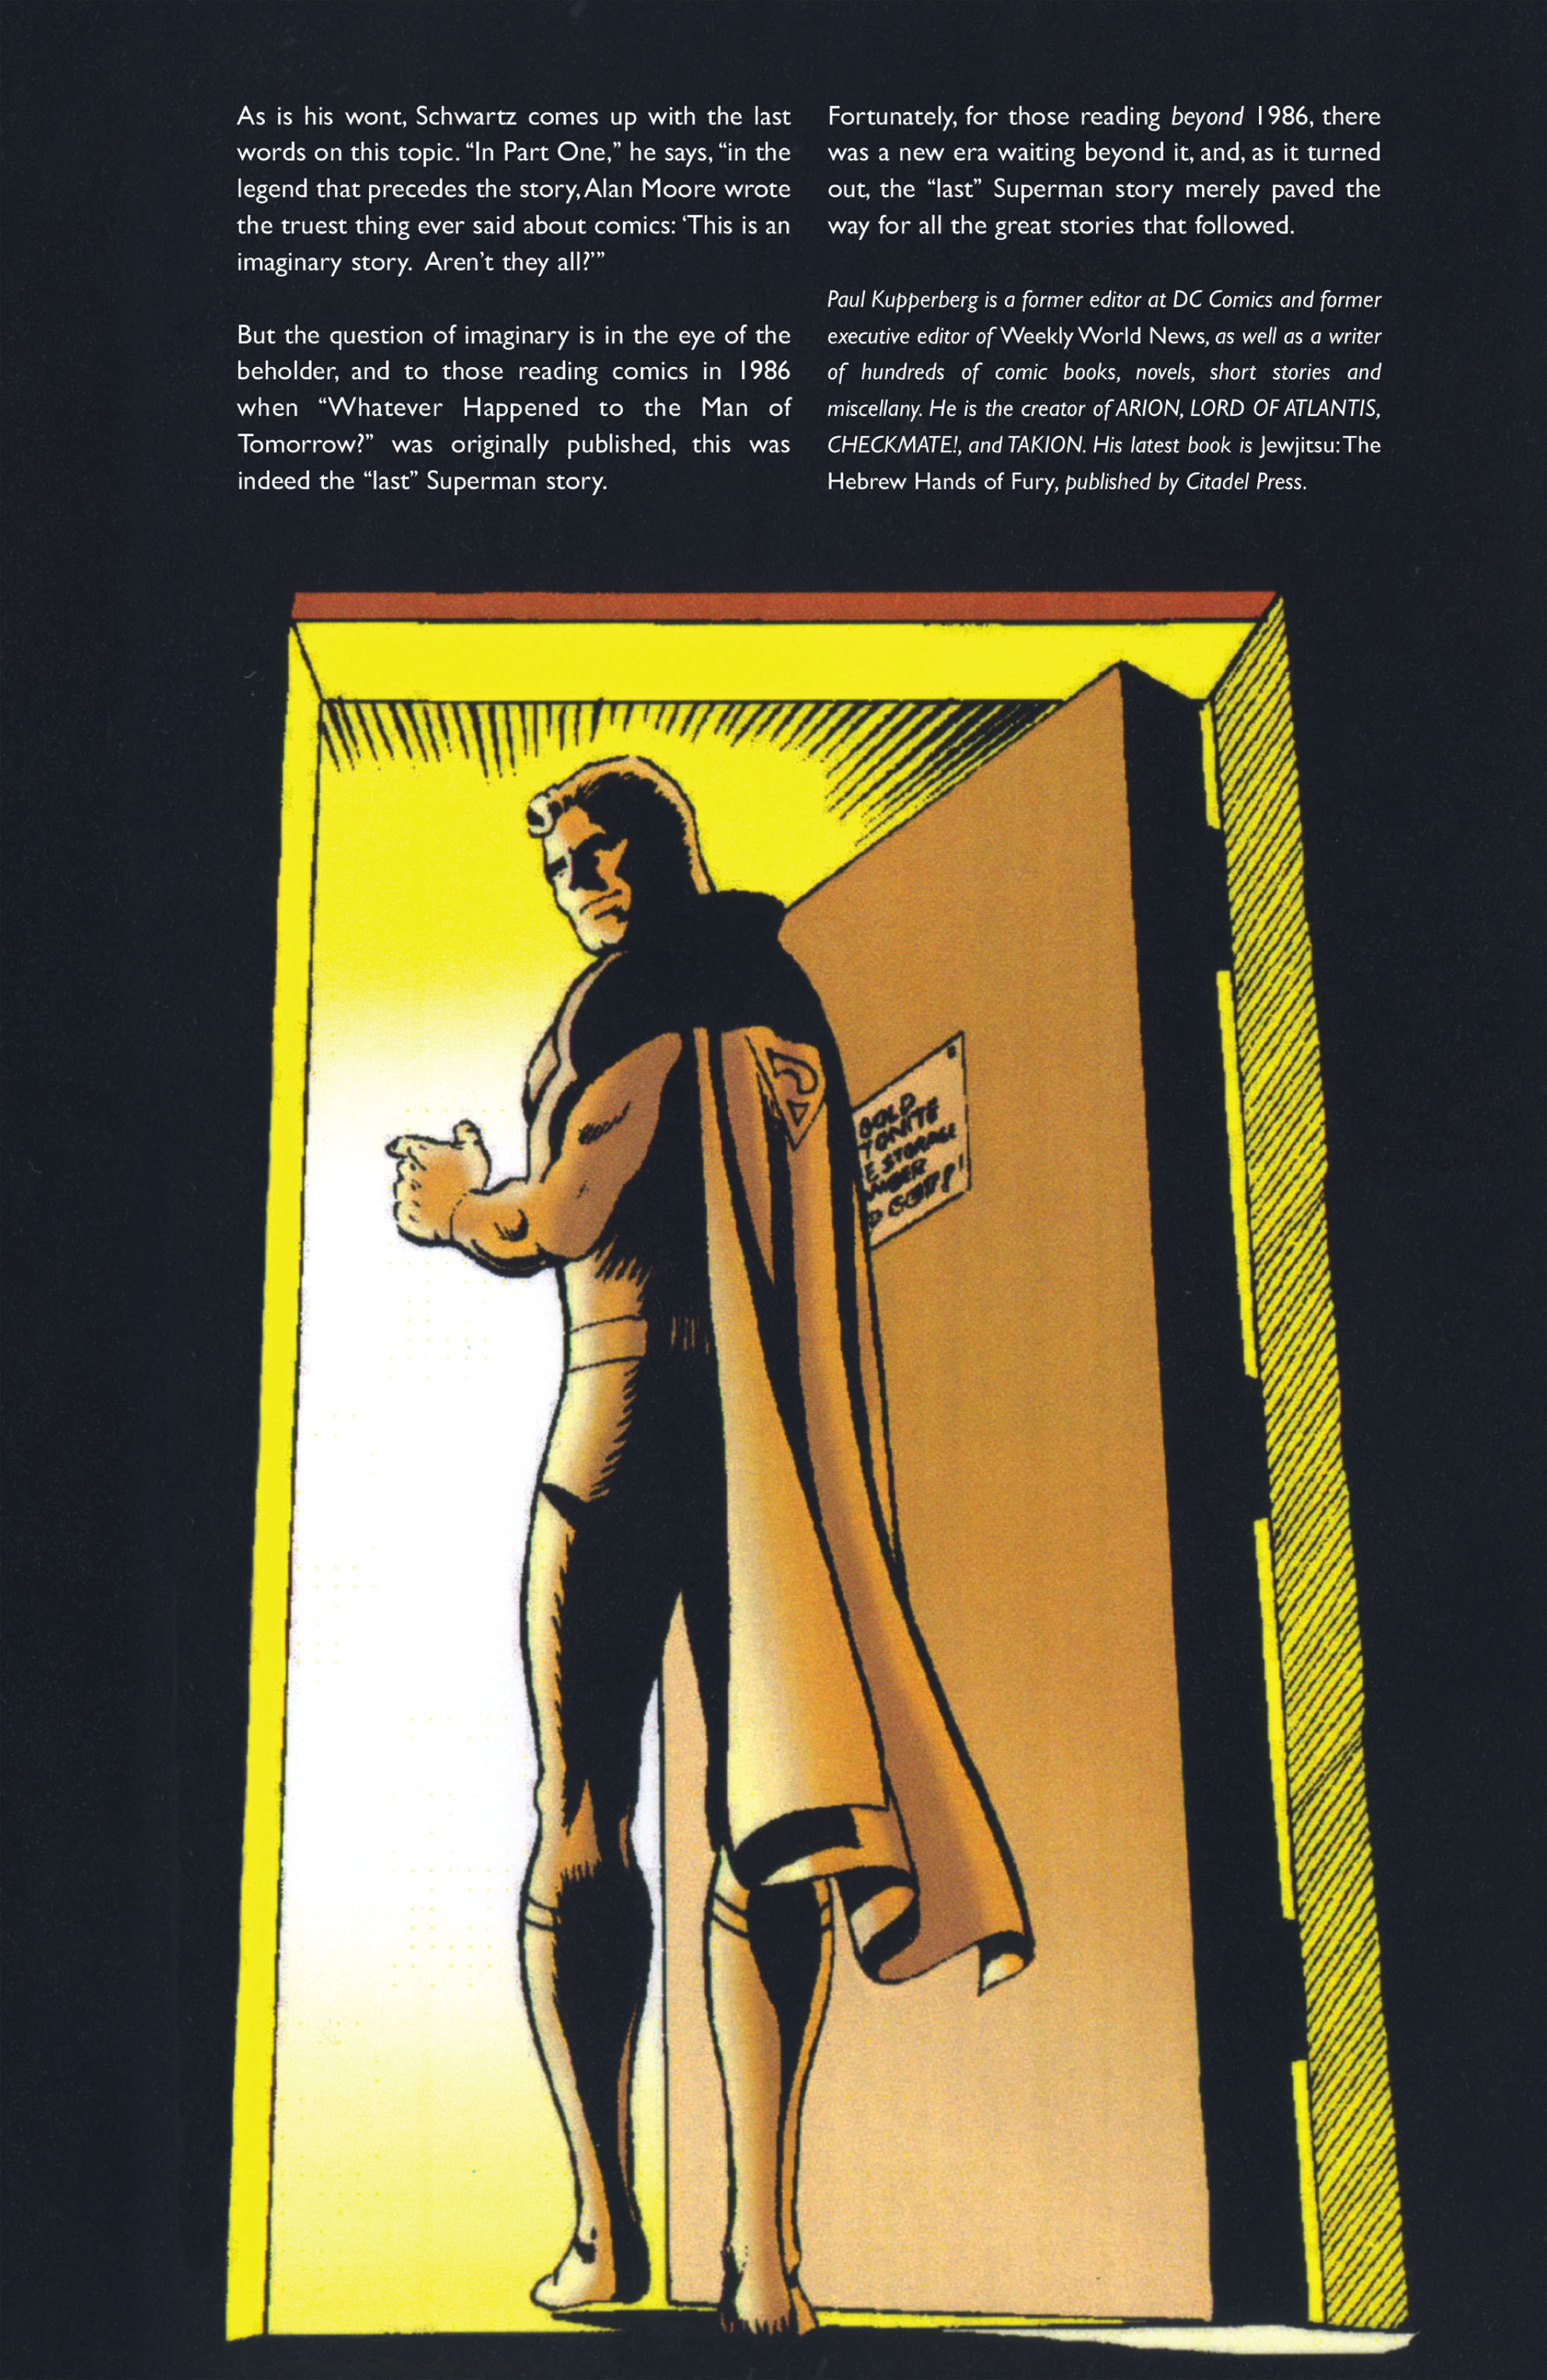 Read online Superman: Whatever Happened to the Man of Tomorrow? comic -  Issue # TPB - 8